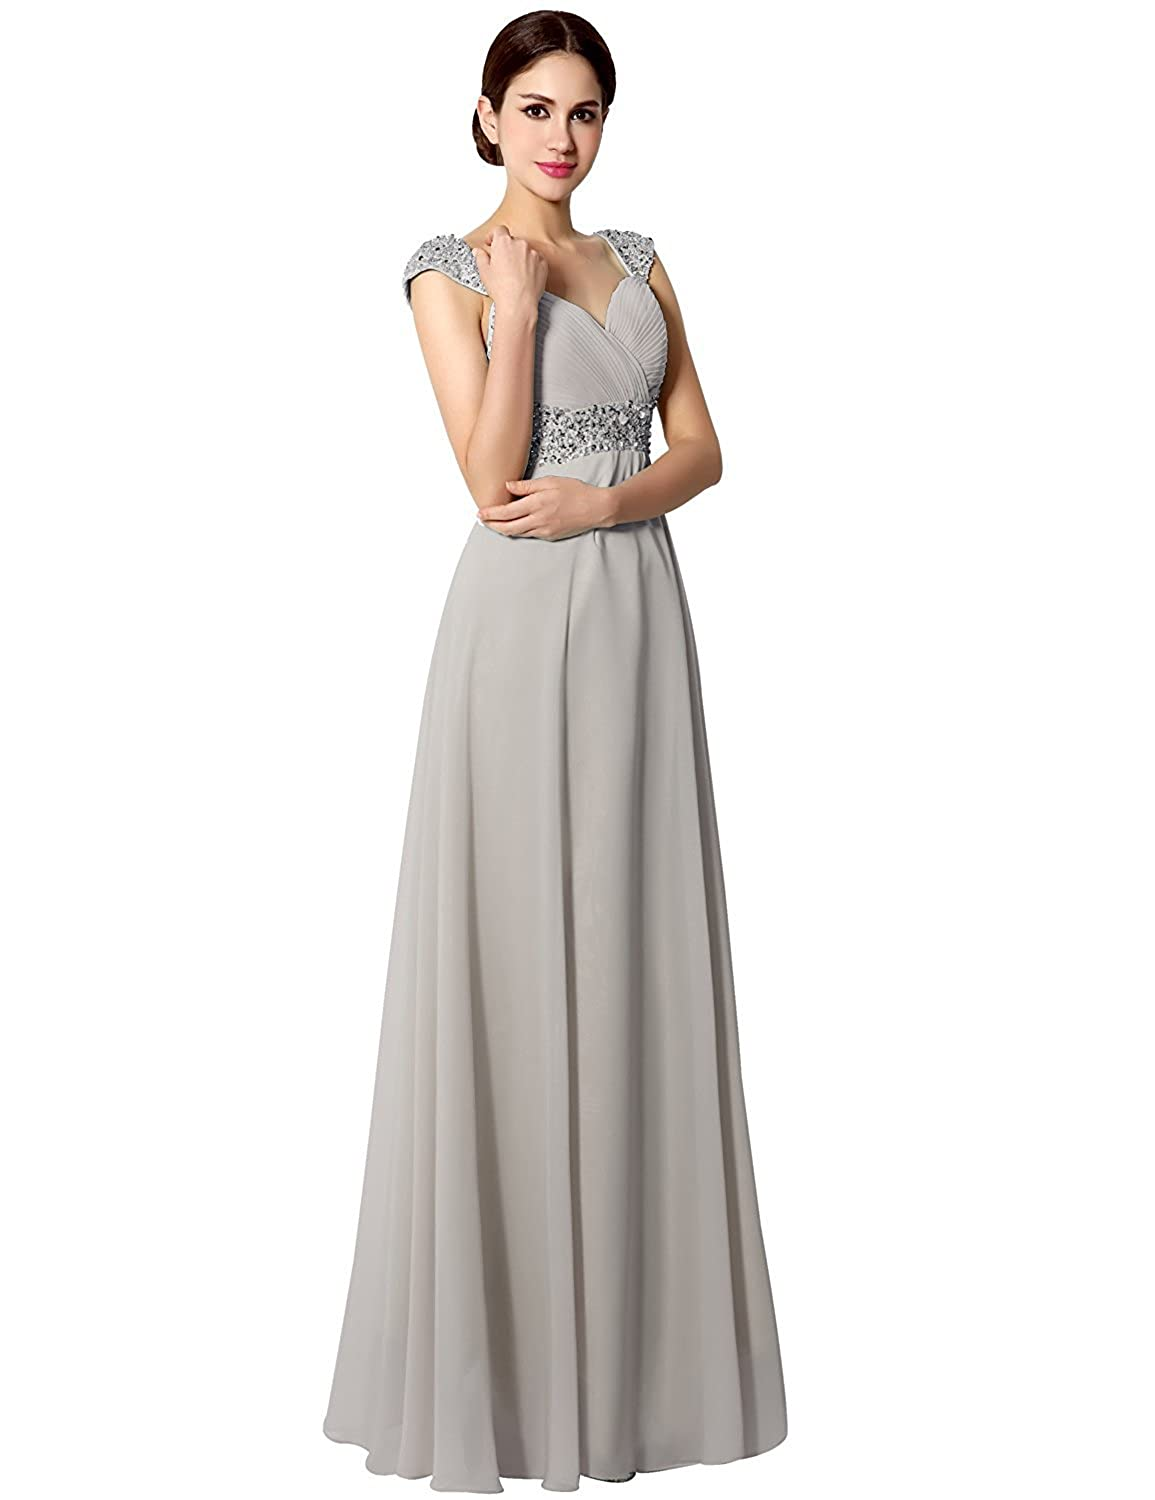 60a615389fb Amazon.com  Sarahbridal Women s Beaded Prom Dress Long 2019 Chiffon  Bridesmaid Gowns for Wedding  Clothing